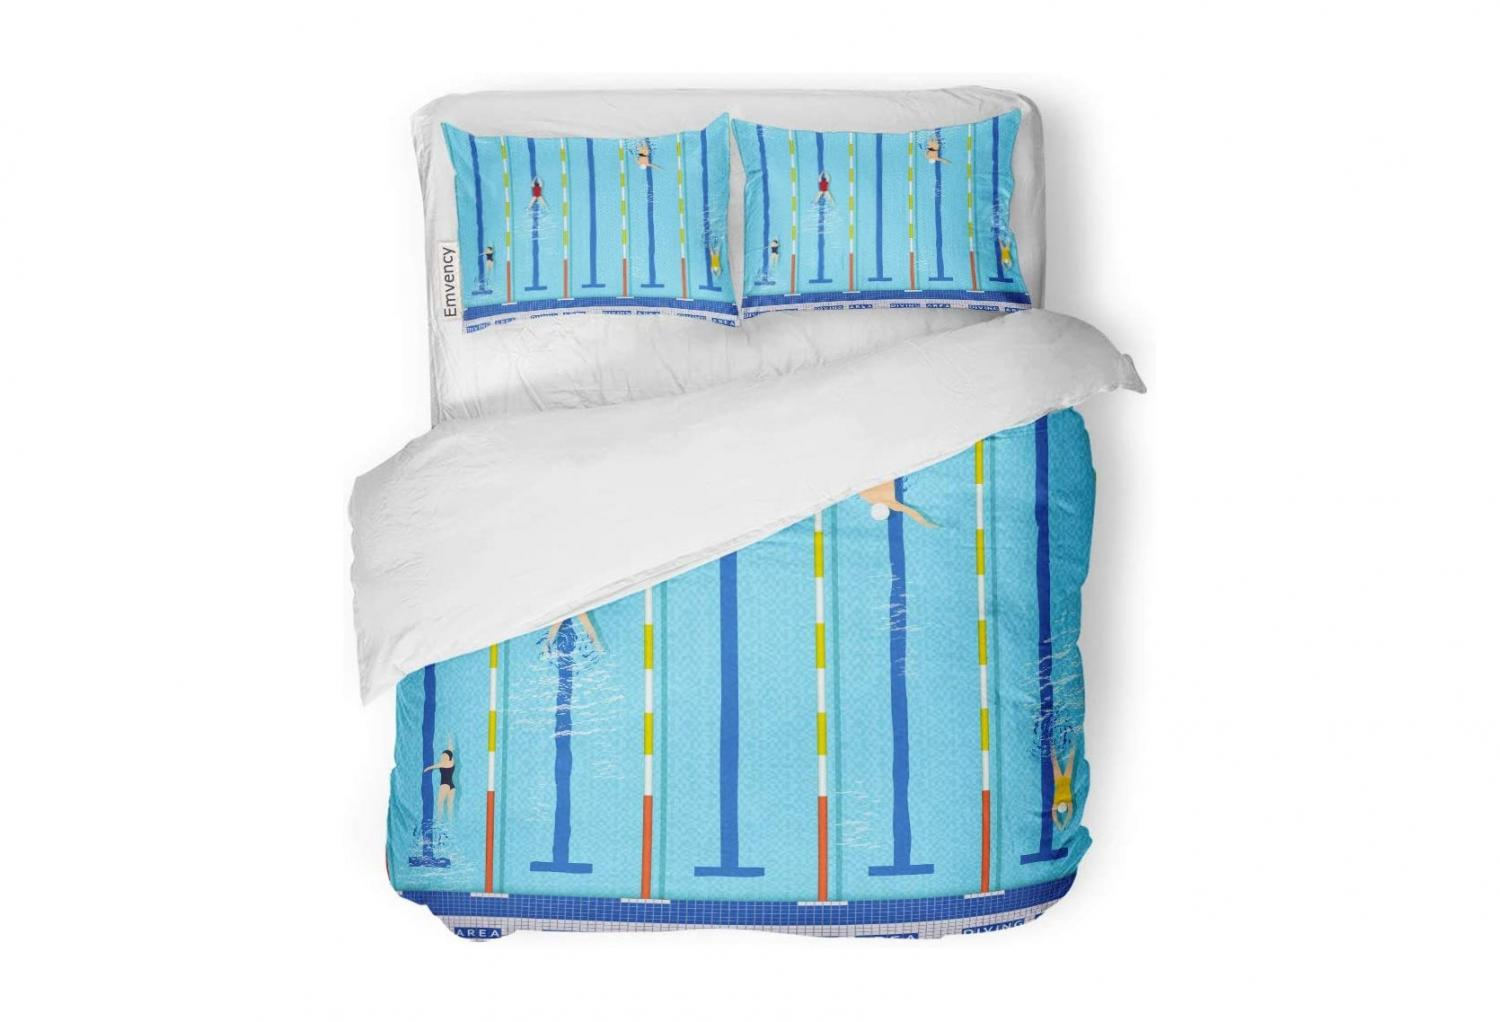 Realistic Swimming Pool Bedding - Olympic pool duvet bed set